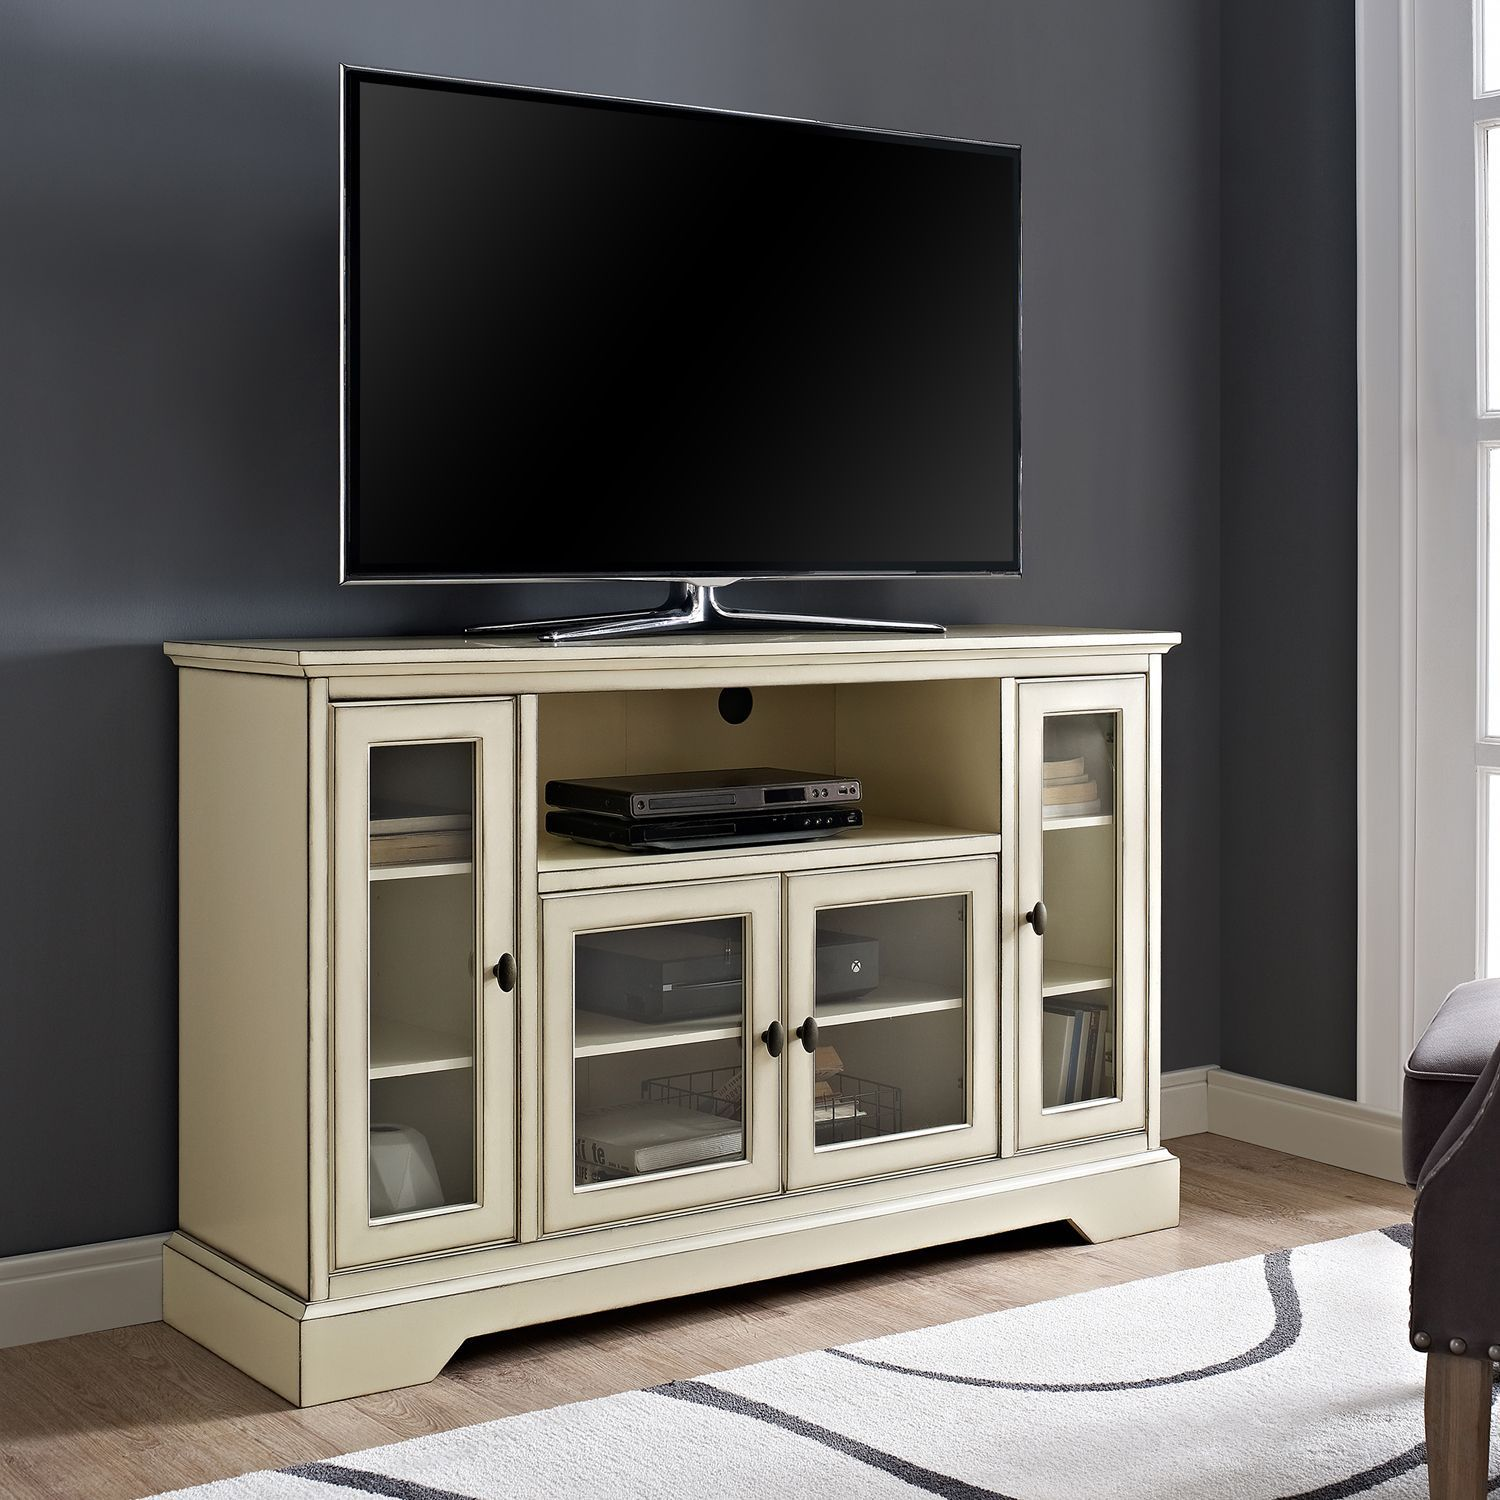 Null Tv Stand Wood Bedroom Tv Stand Wood Tv Stand Modern